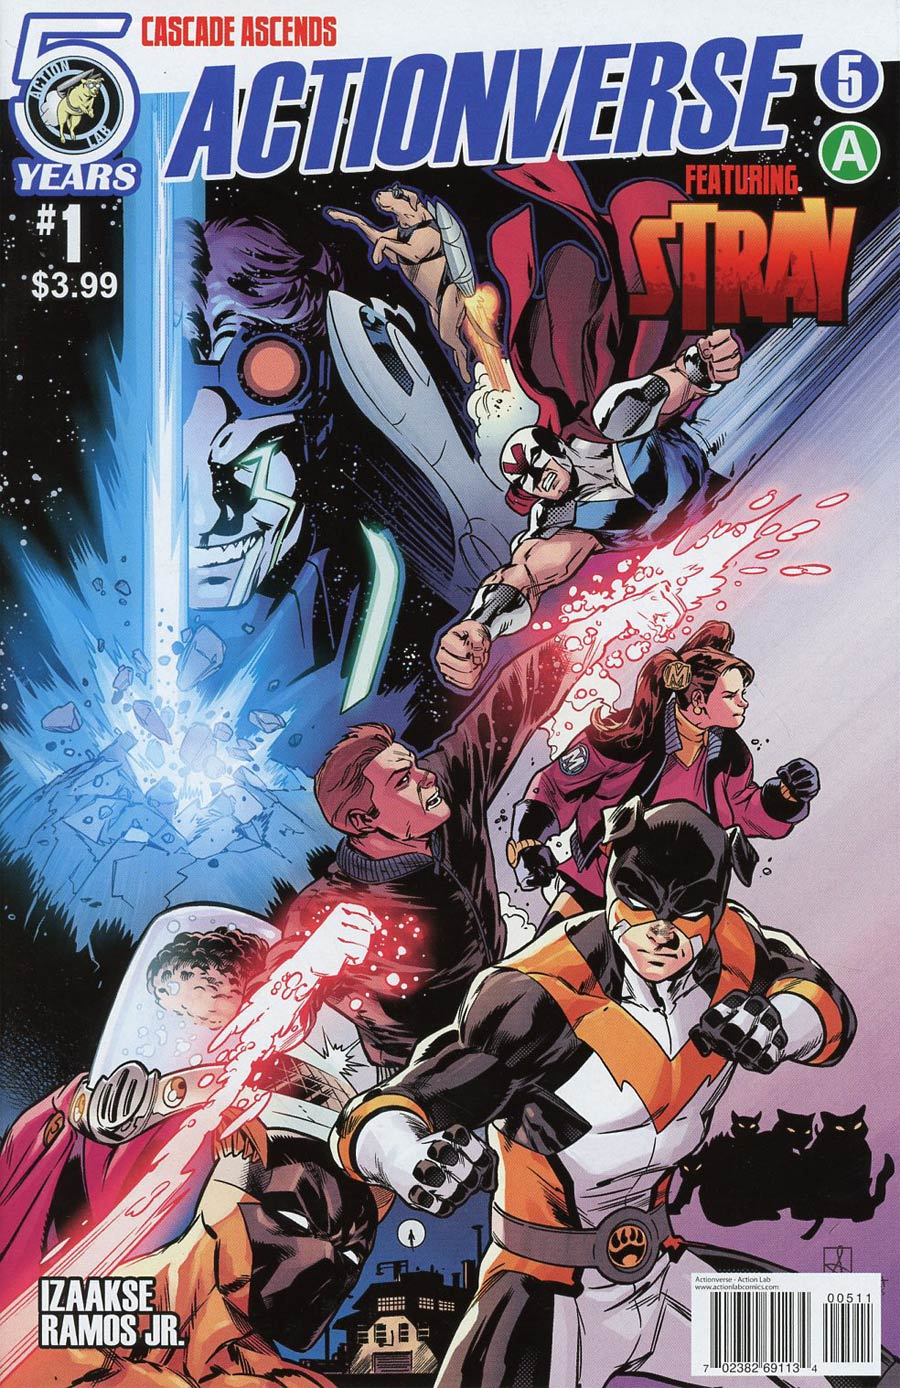 Actionverse #5 Featuring Stray Cover A Regular Sean Izaaakse & Mat Lopes Cover